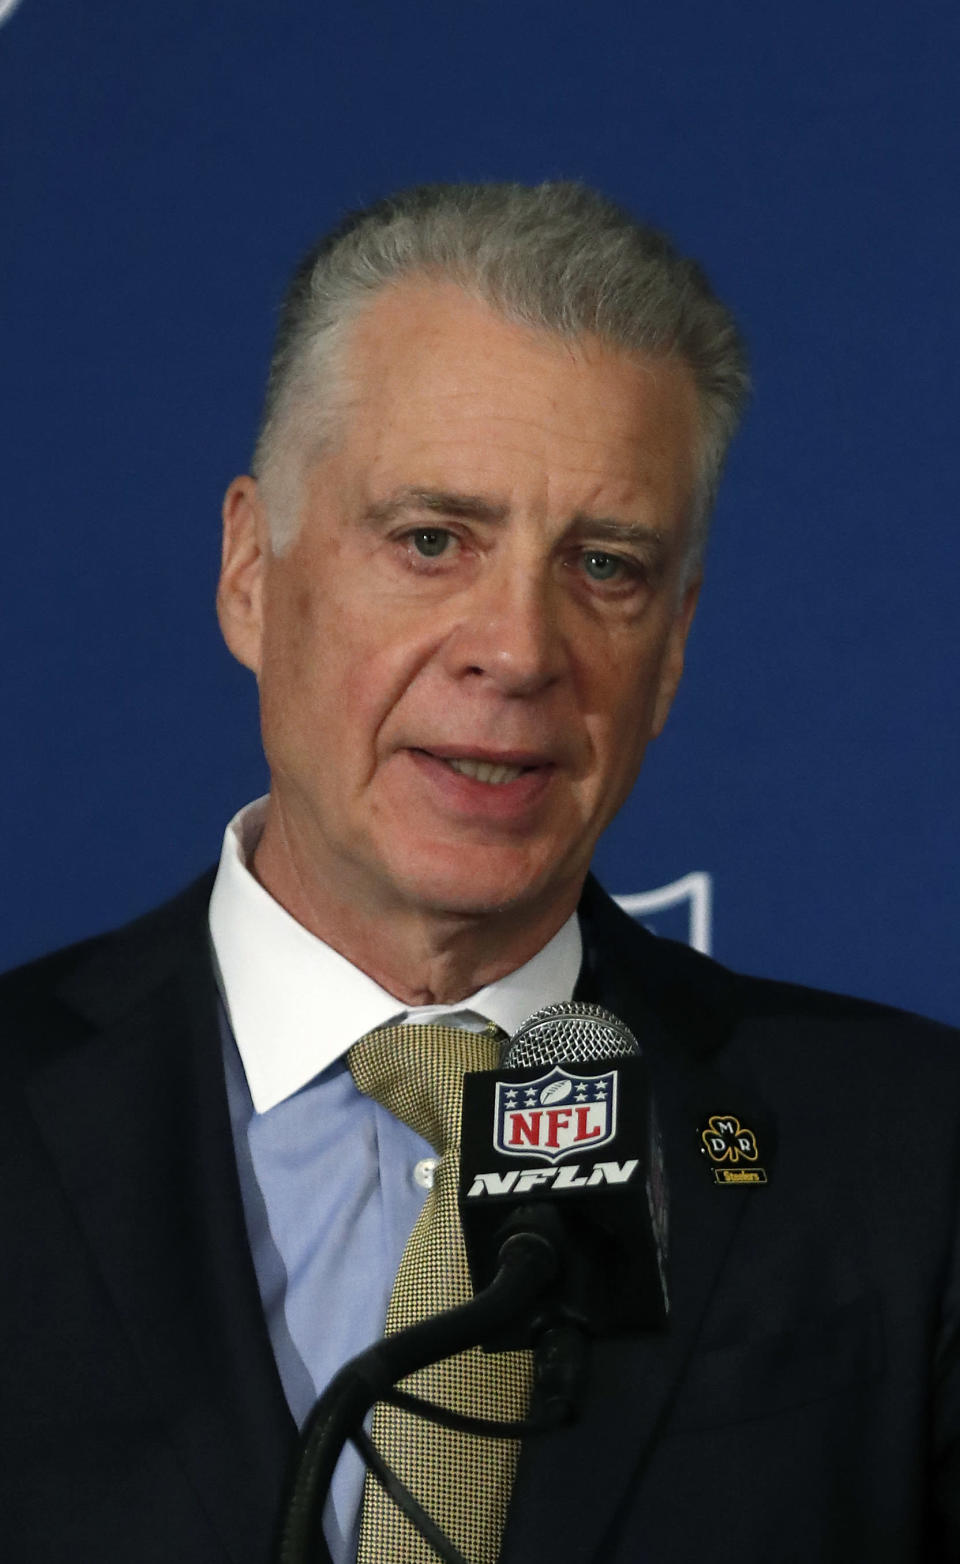 """Pittsburgh Steelers President Art Rooney II speaks to reporters after it was announced NFL team owners have reached agreement on a new league policy that requires players to stand for """"The Star-Spangled Banner"""" or remain in the locker room during the NFL owner's spring meeting Wednesday, May 23, 2018, in Atlanta. (AP Photo/John Bazemore)"""